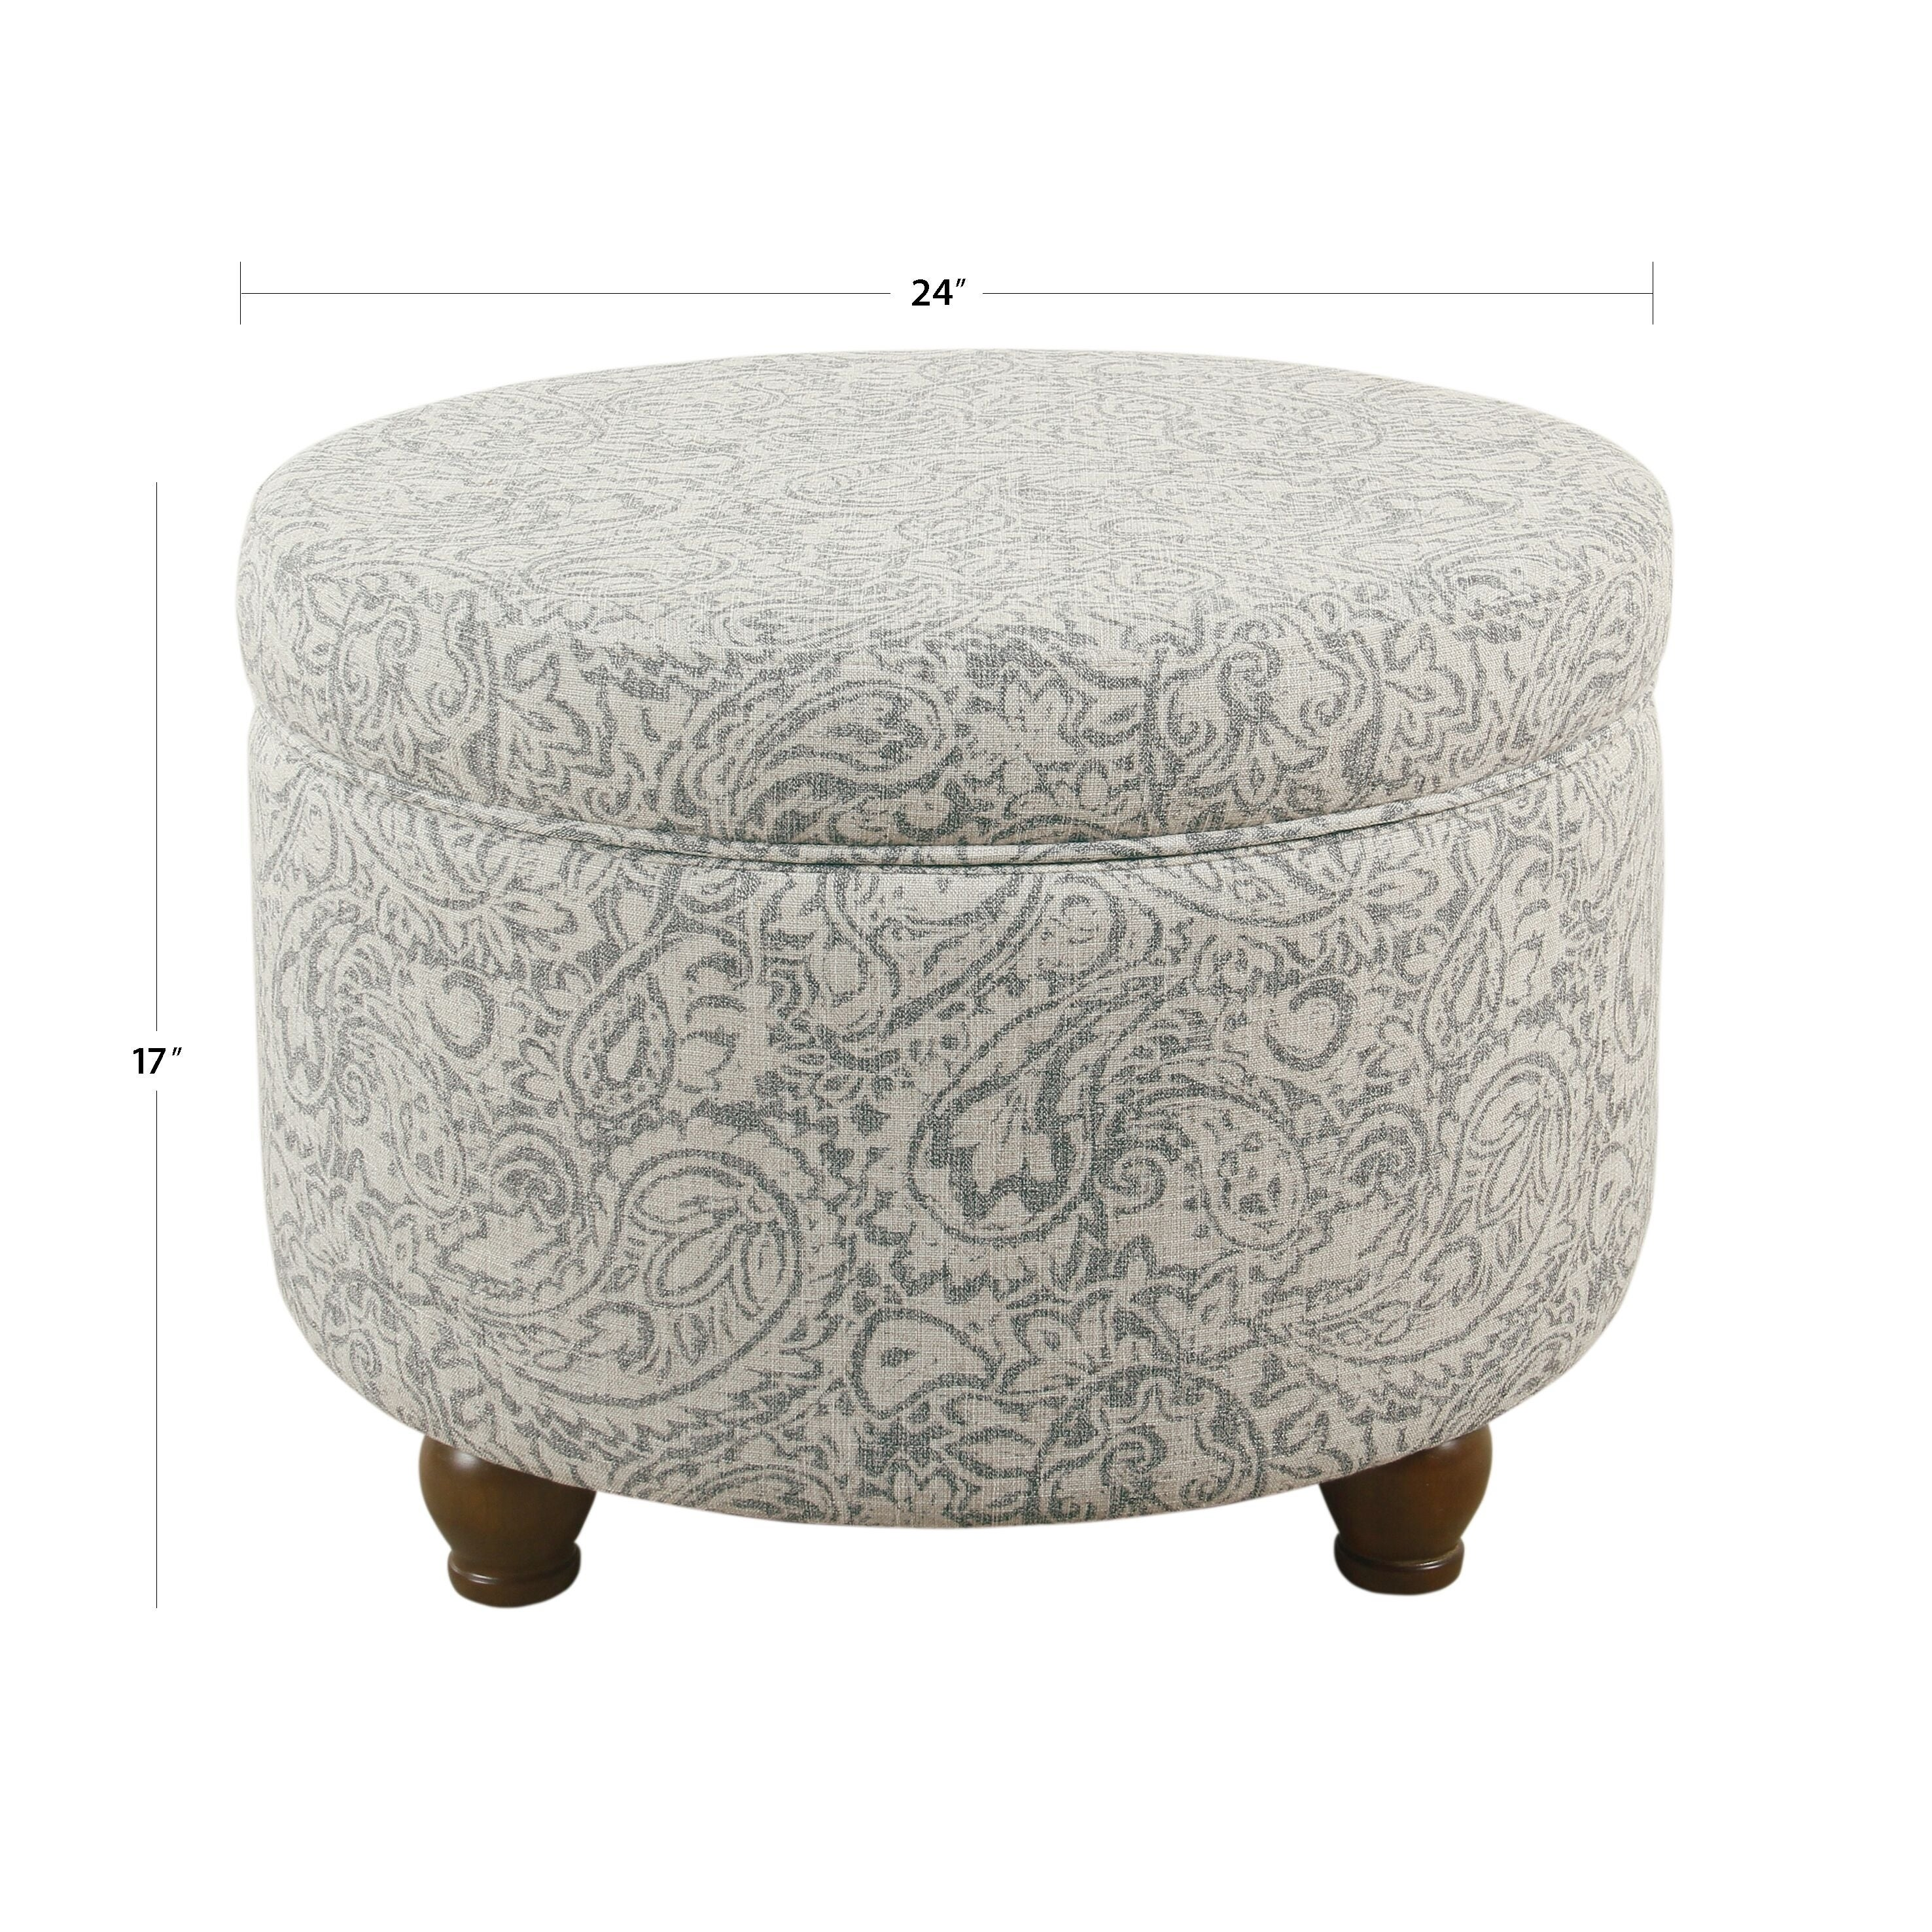 Fabulous The Curated Nomad Hector Grey Floral Storage Ottoman Alphanode Cool Chair Designs And Ideas Alphanodeonline